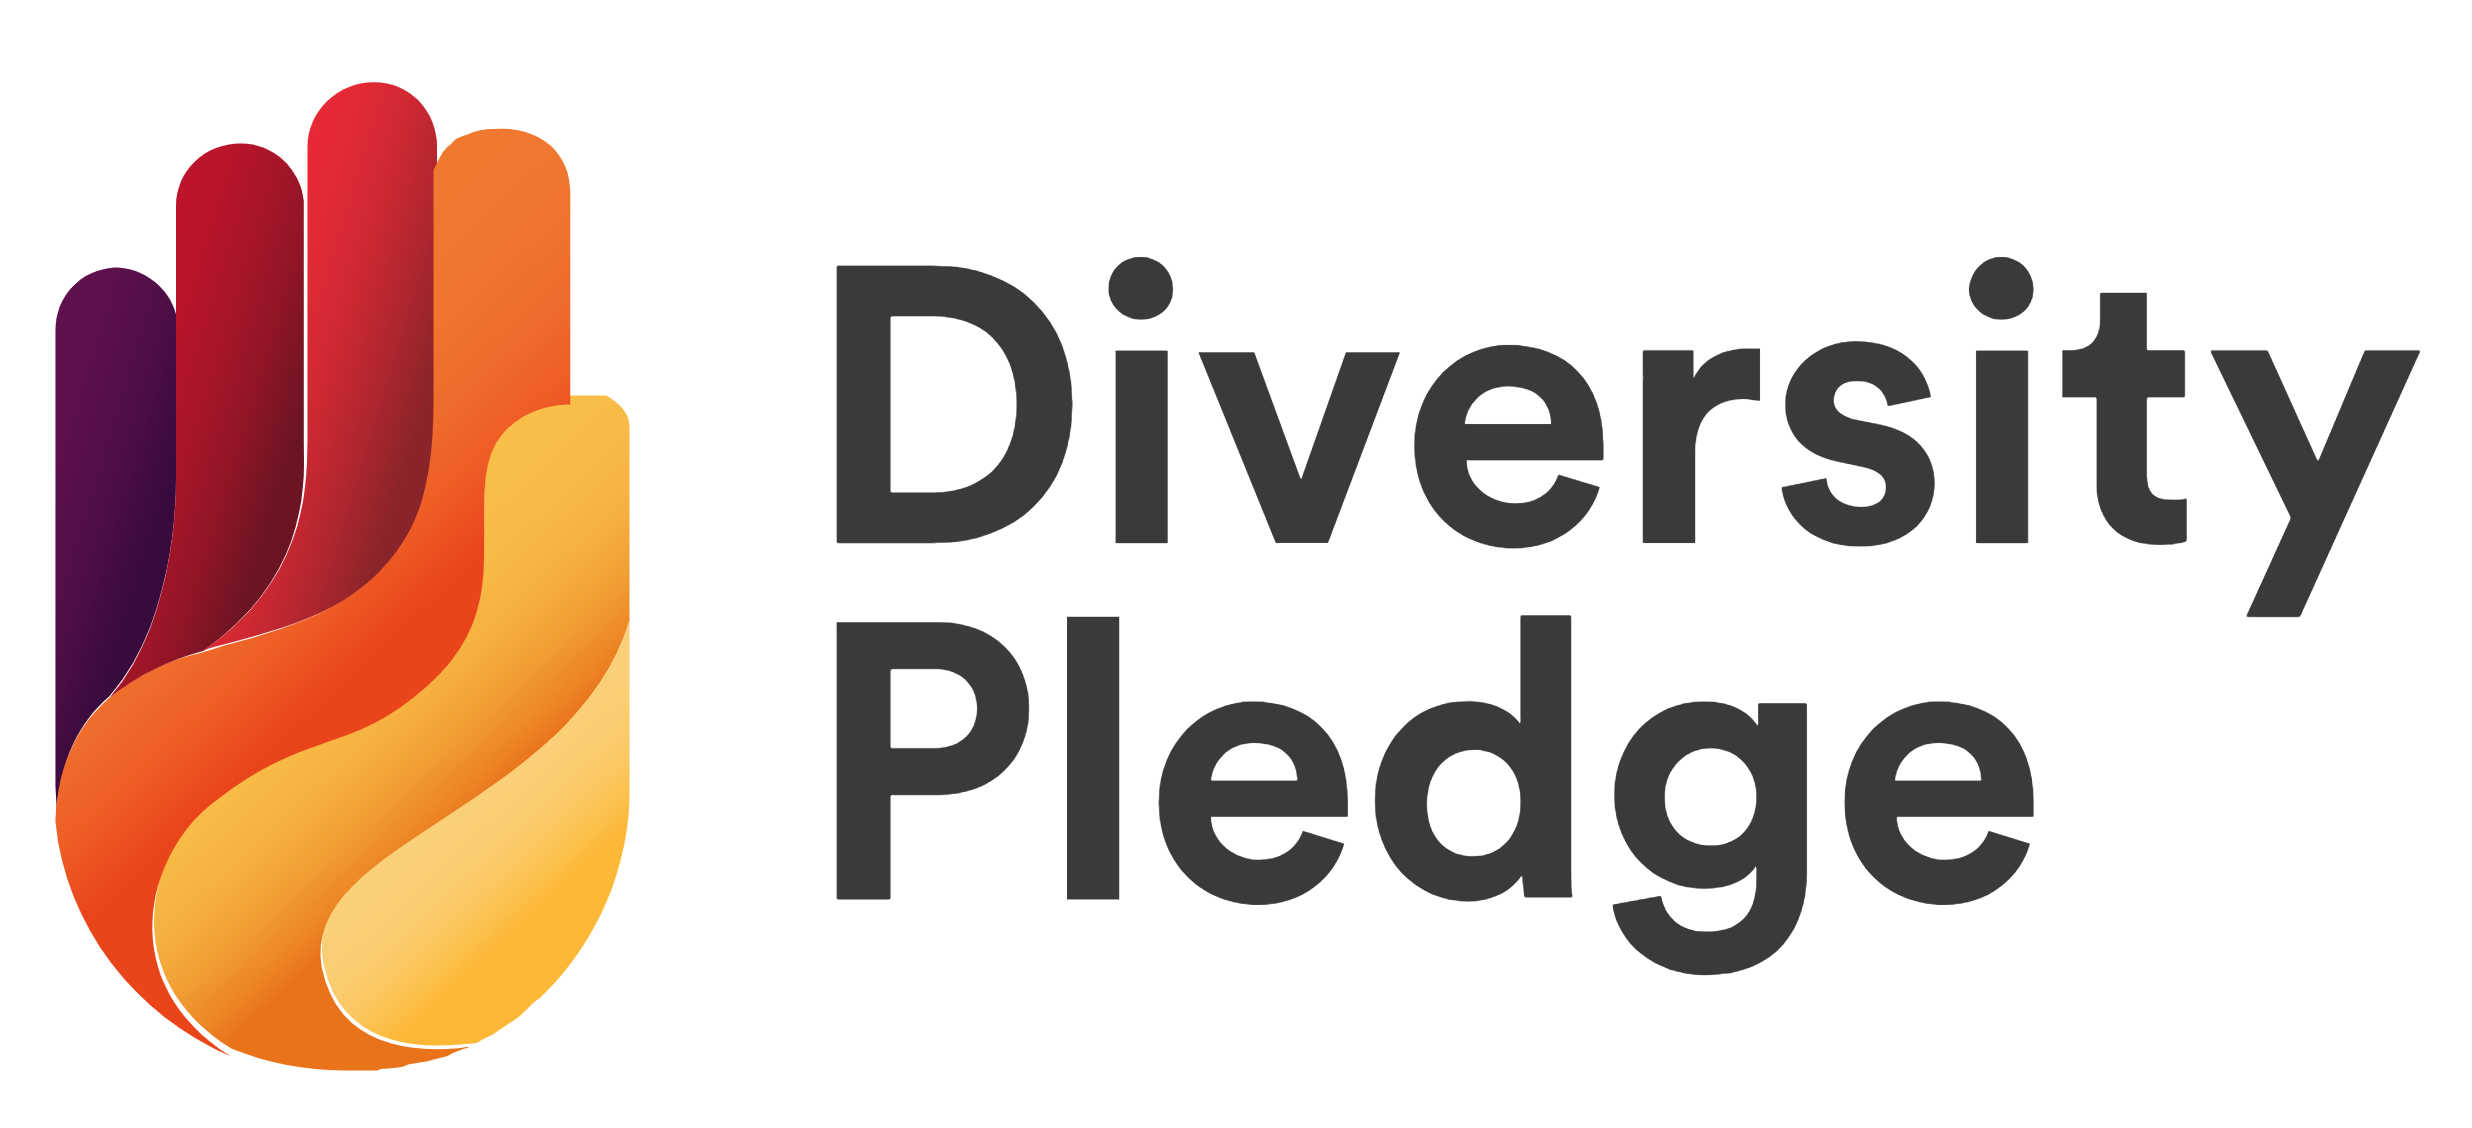 ABJ - March 26, 2019 - NCV Among First Firms in Austin to Sign Diversity Pledge